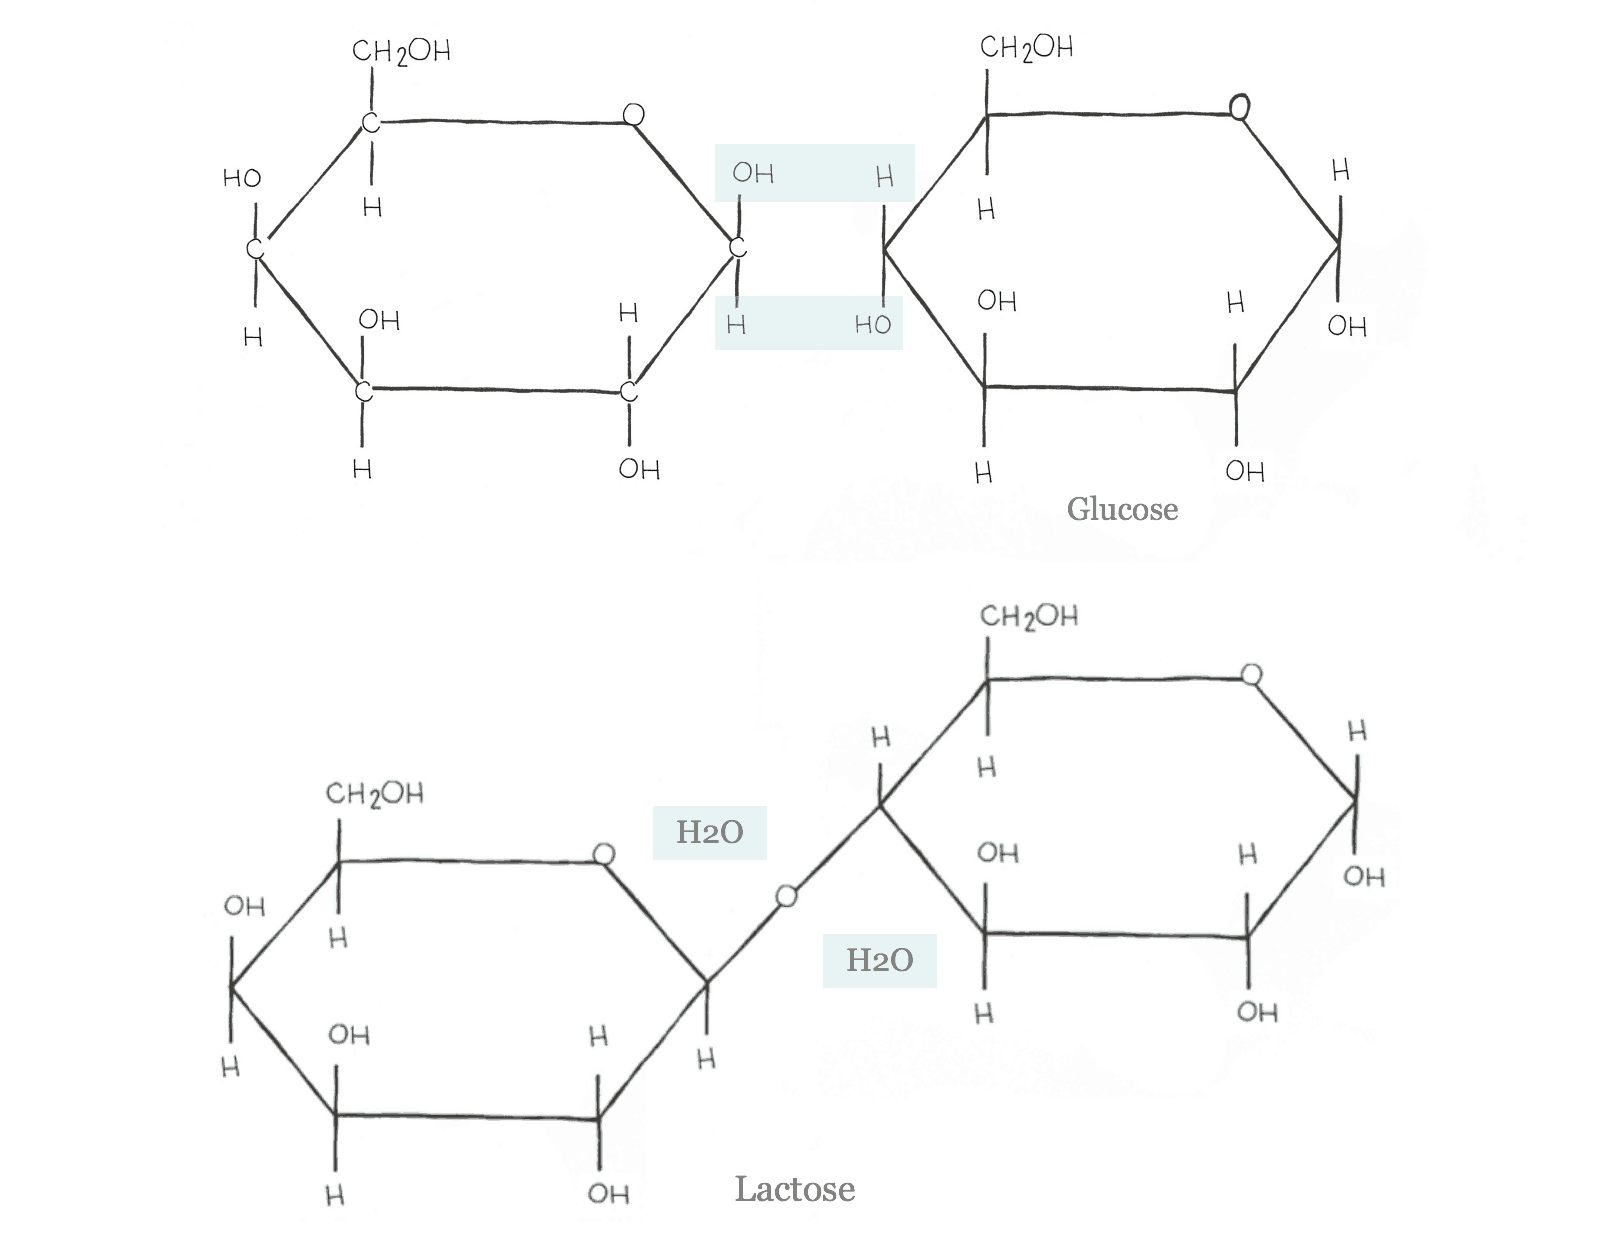 Dehydration Synthesis Diagram